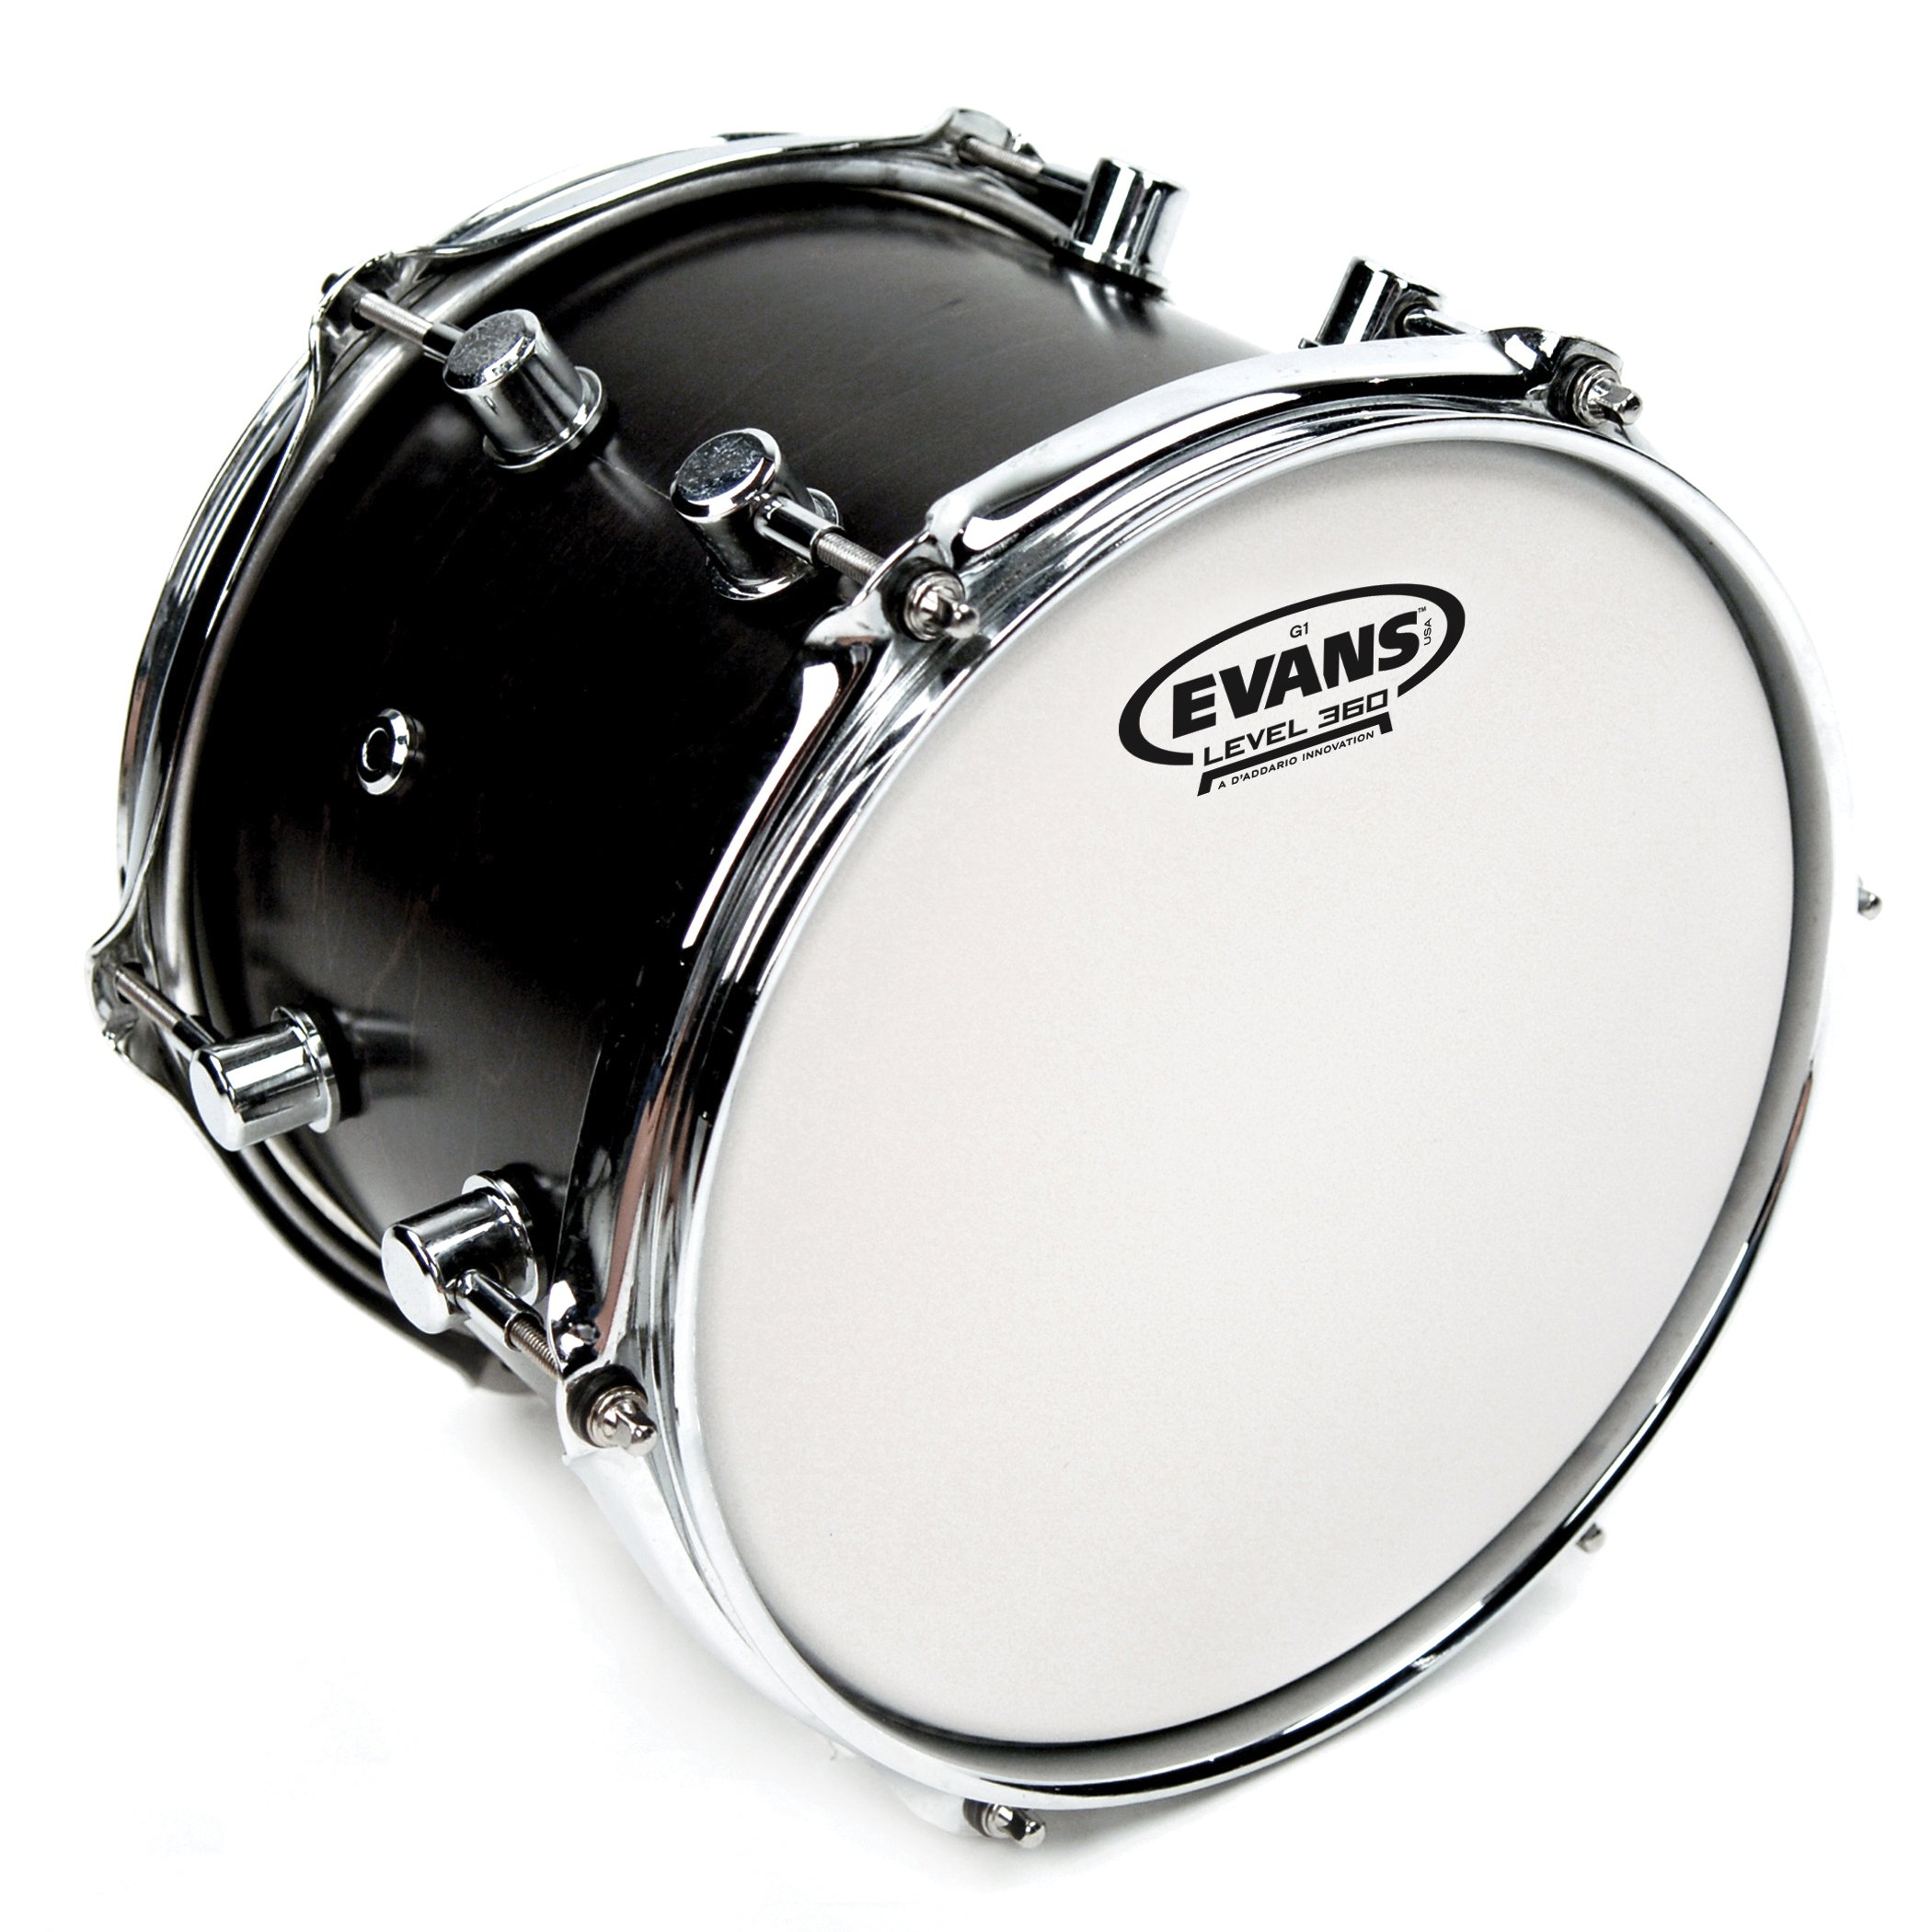 Best Rated In Drum Set Drumheads Helpful Customer Reviews Up Diagram Car Tuning Evans G1 Coated Head 14 Inch Product Image